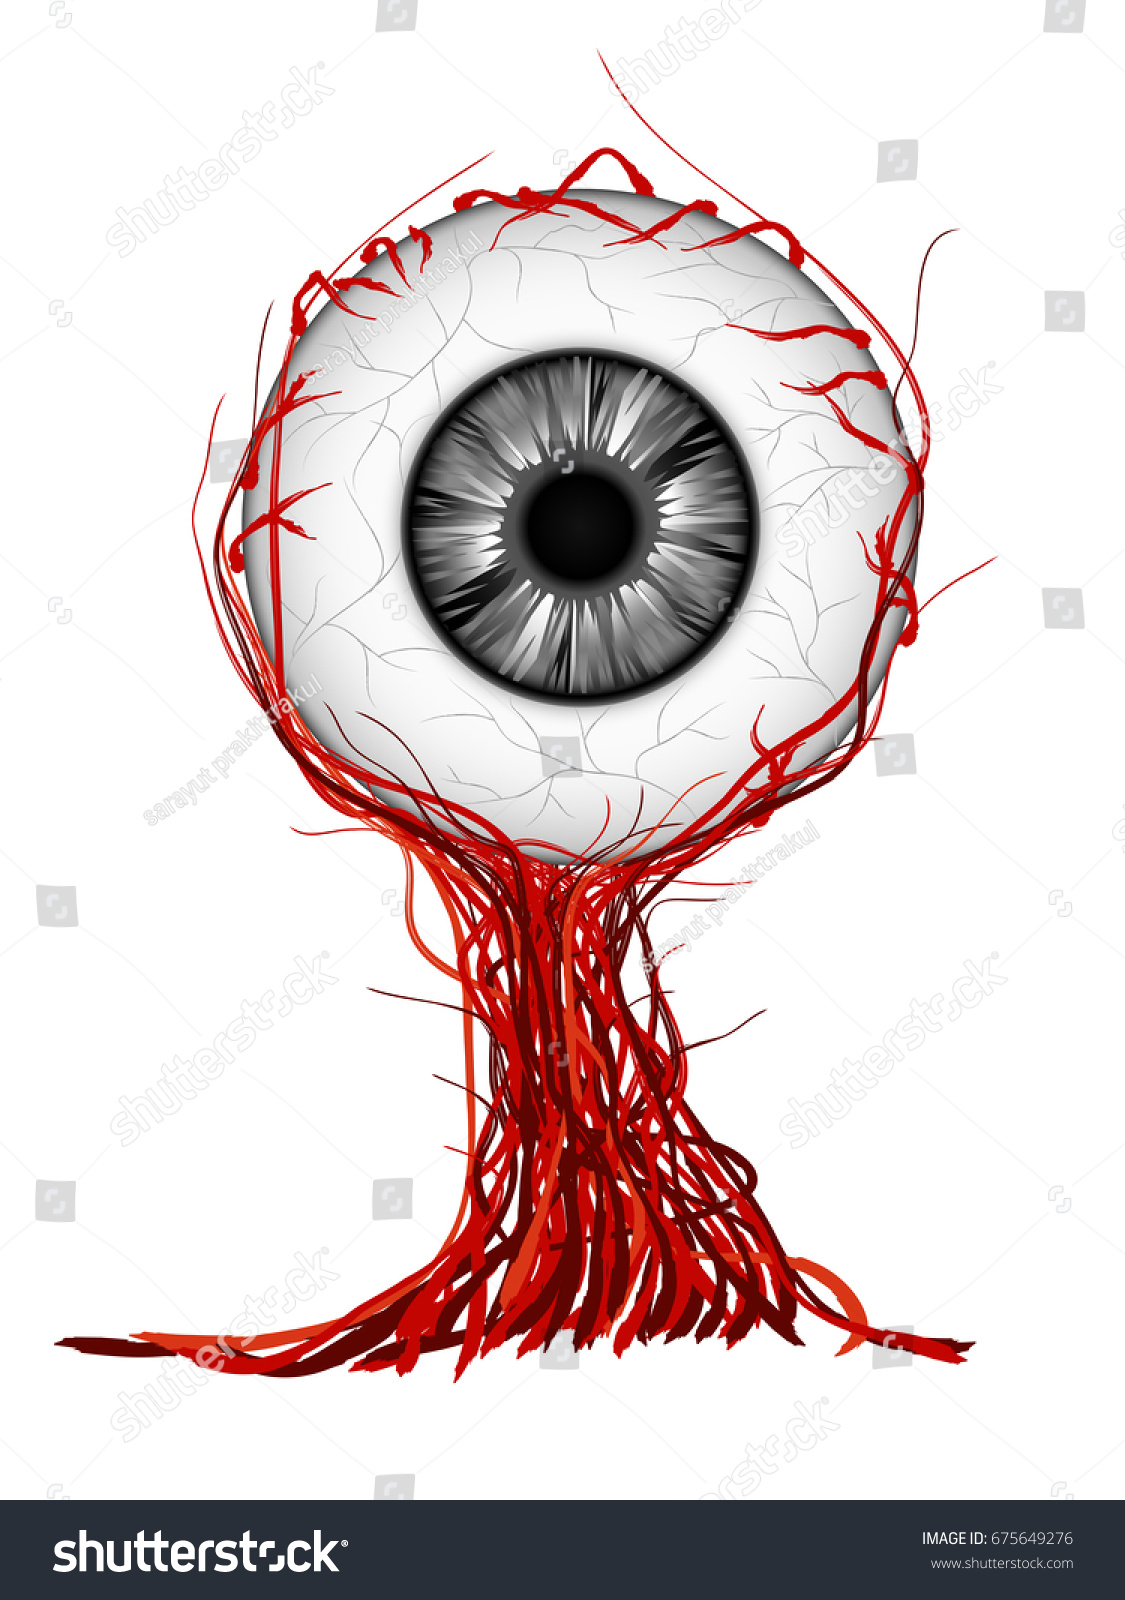 Drawing Eye Anatomy Inner Structure Visual Stock Photo (Photo ...